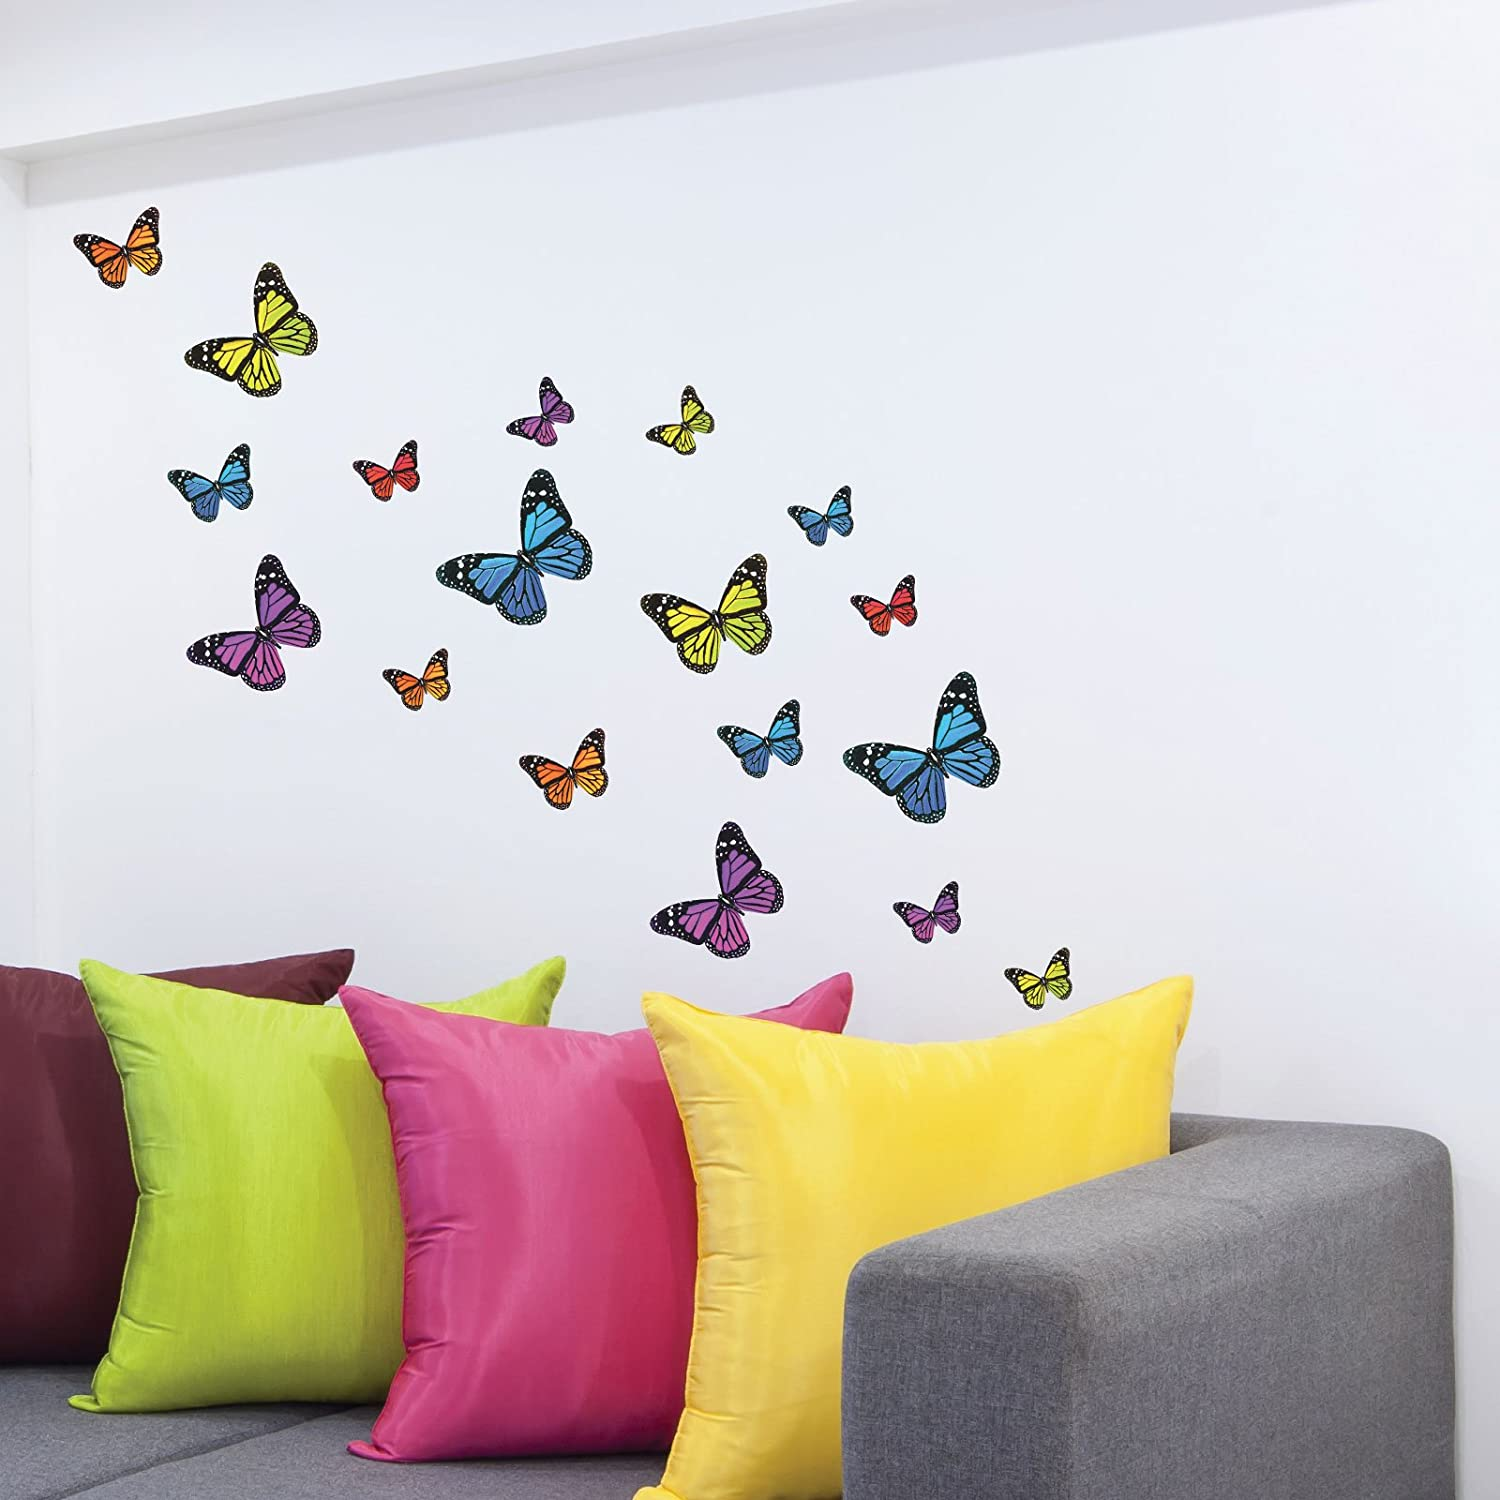 Ordinaire Monarch Butterfly Wall Stickers, Wall Decals, 21 Piece Mixed Colours U0026  Size: Amazon.co.uk: Kitchen U0026 Home